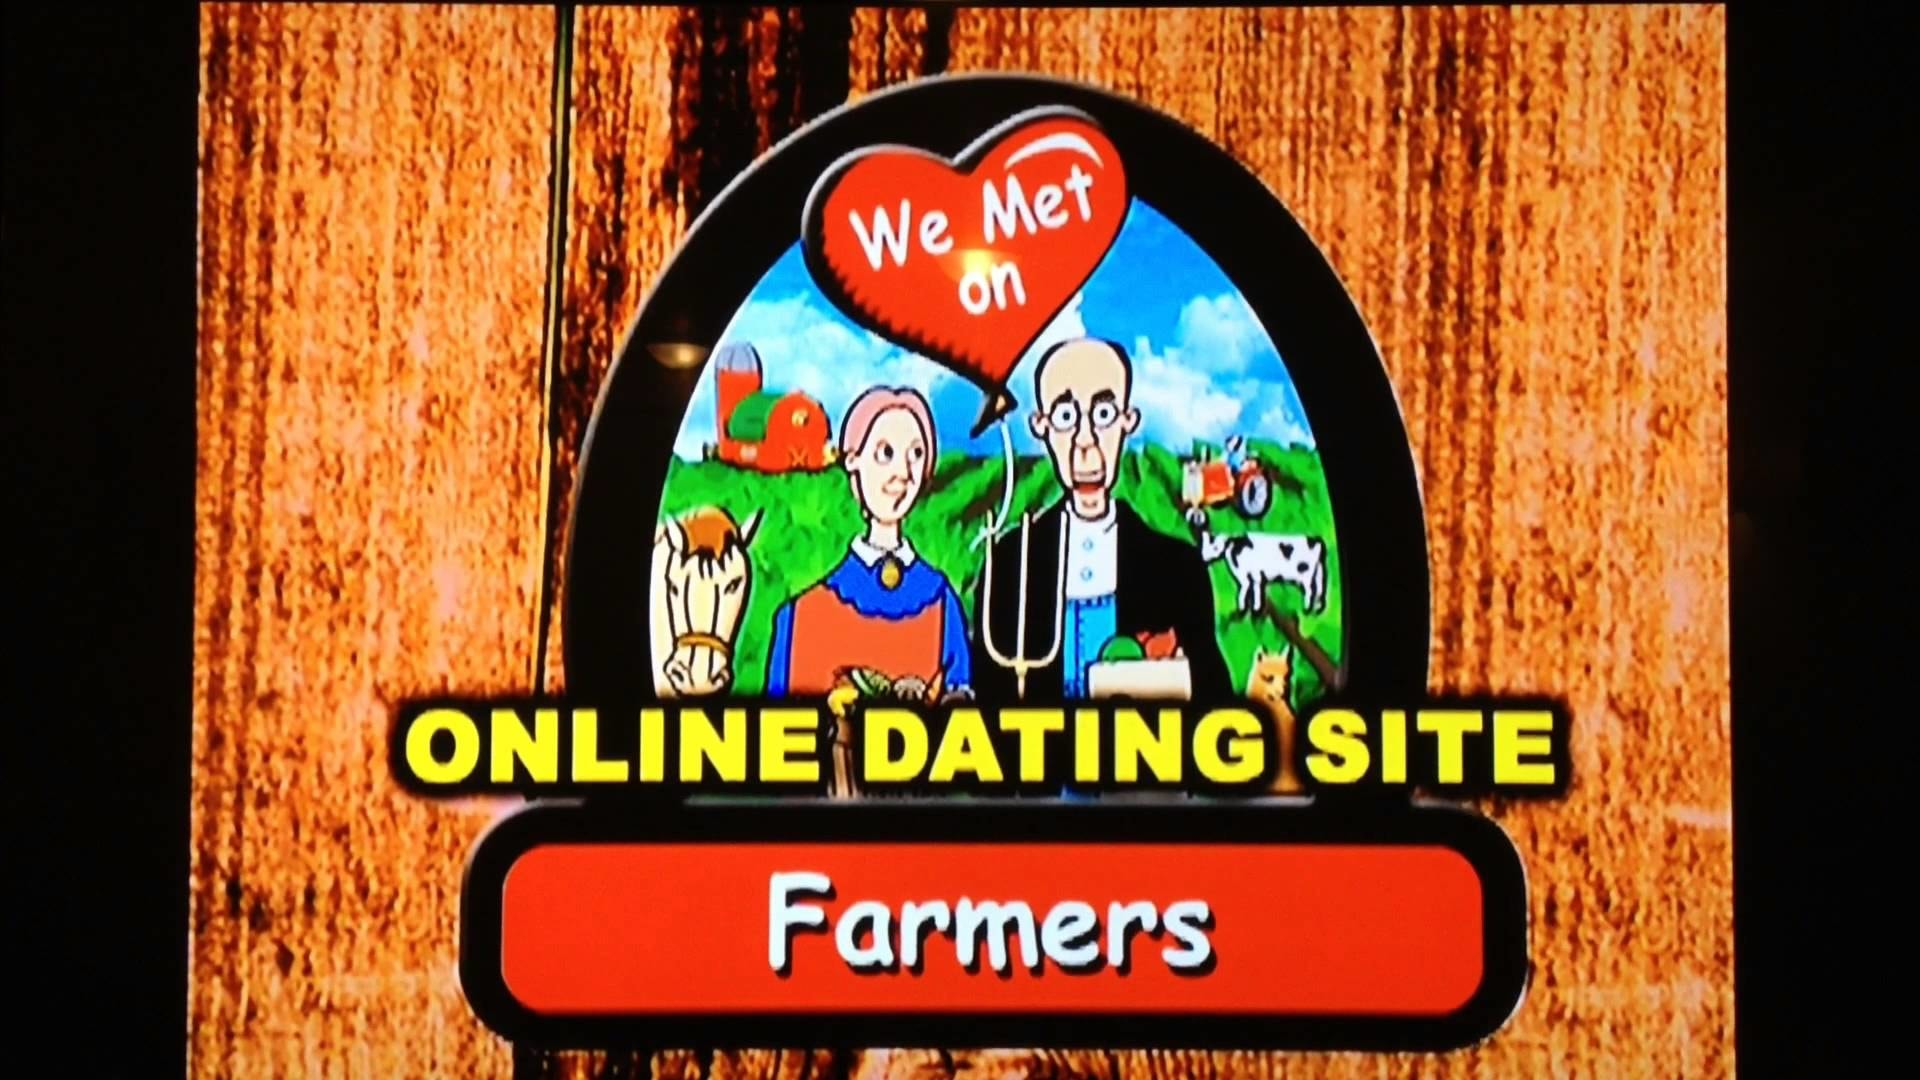 Farmers hook up site